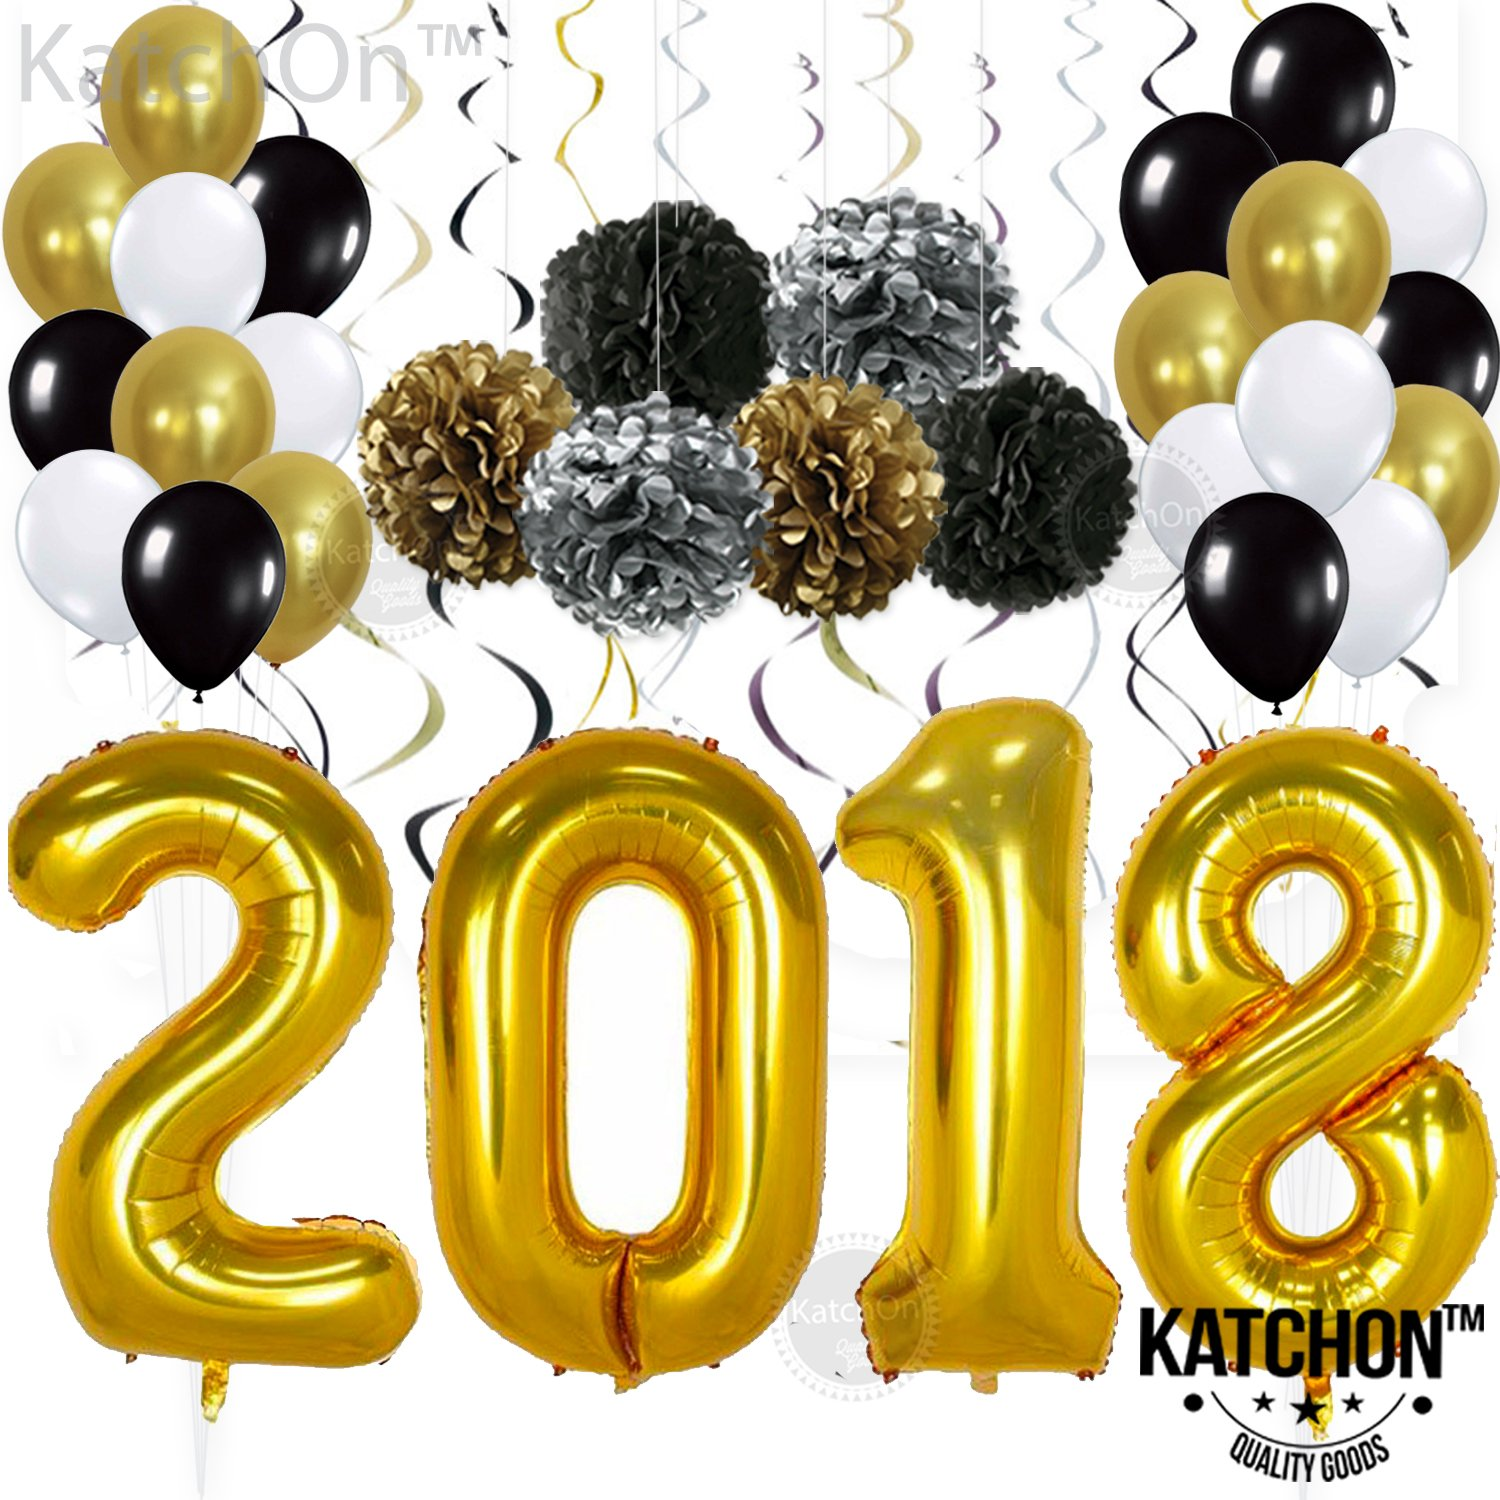 2018 Gold Balloons with Hanging Party Swirls, Paper PomPoms, and Ballons - Graduation Balloons for 2018 Graduation Decorations - Gold Black Silver PomPoms and Swirls -New Years Eve Party Supplies by KATCHON